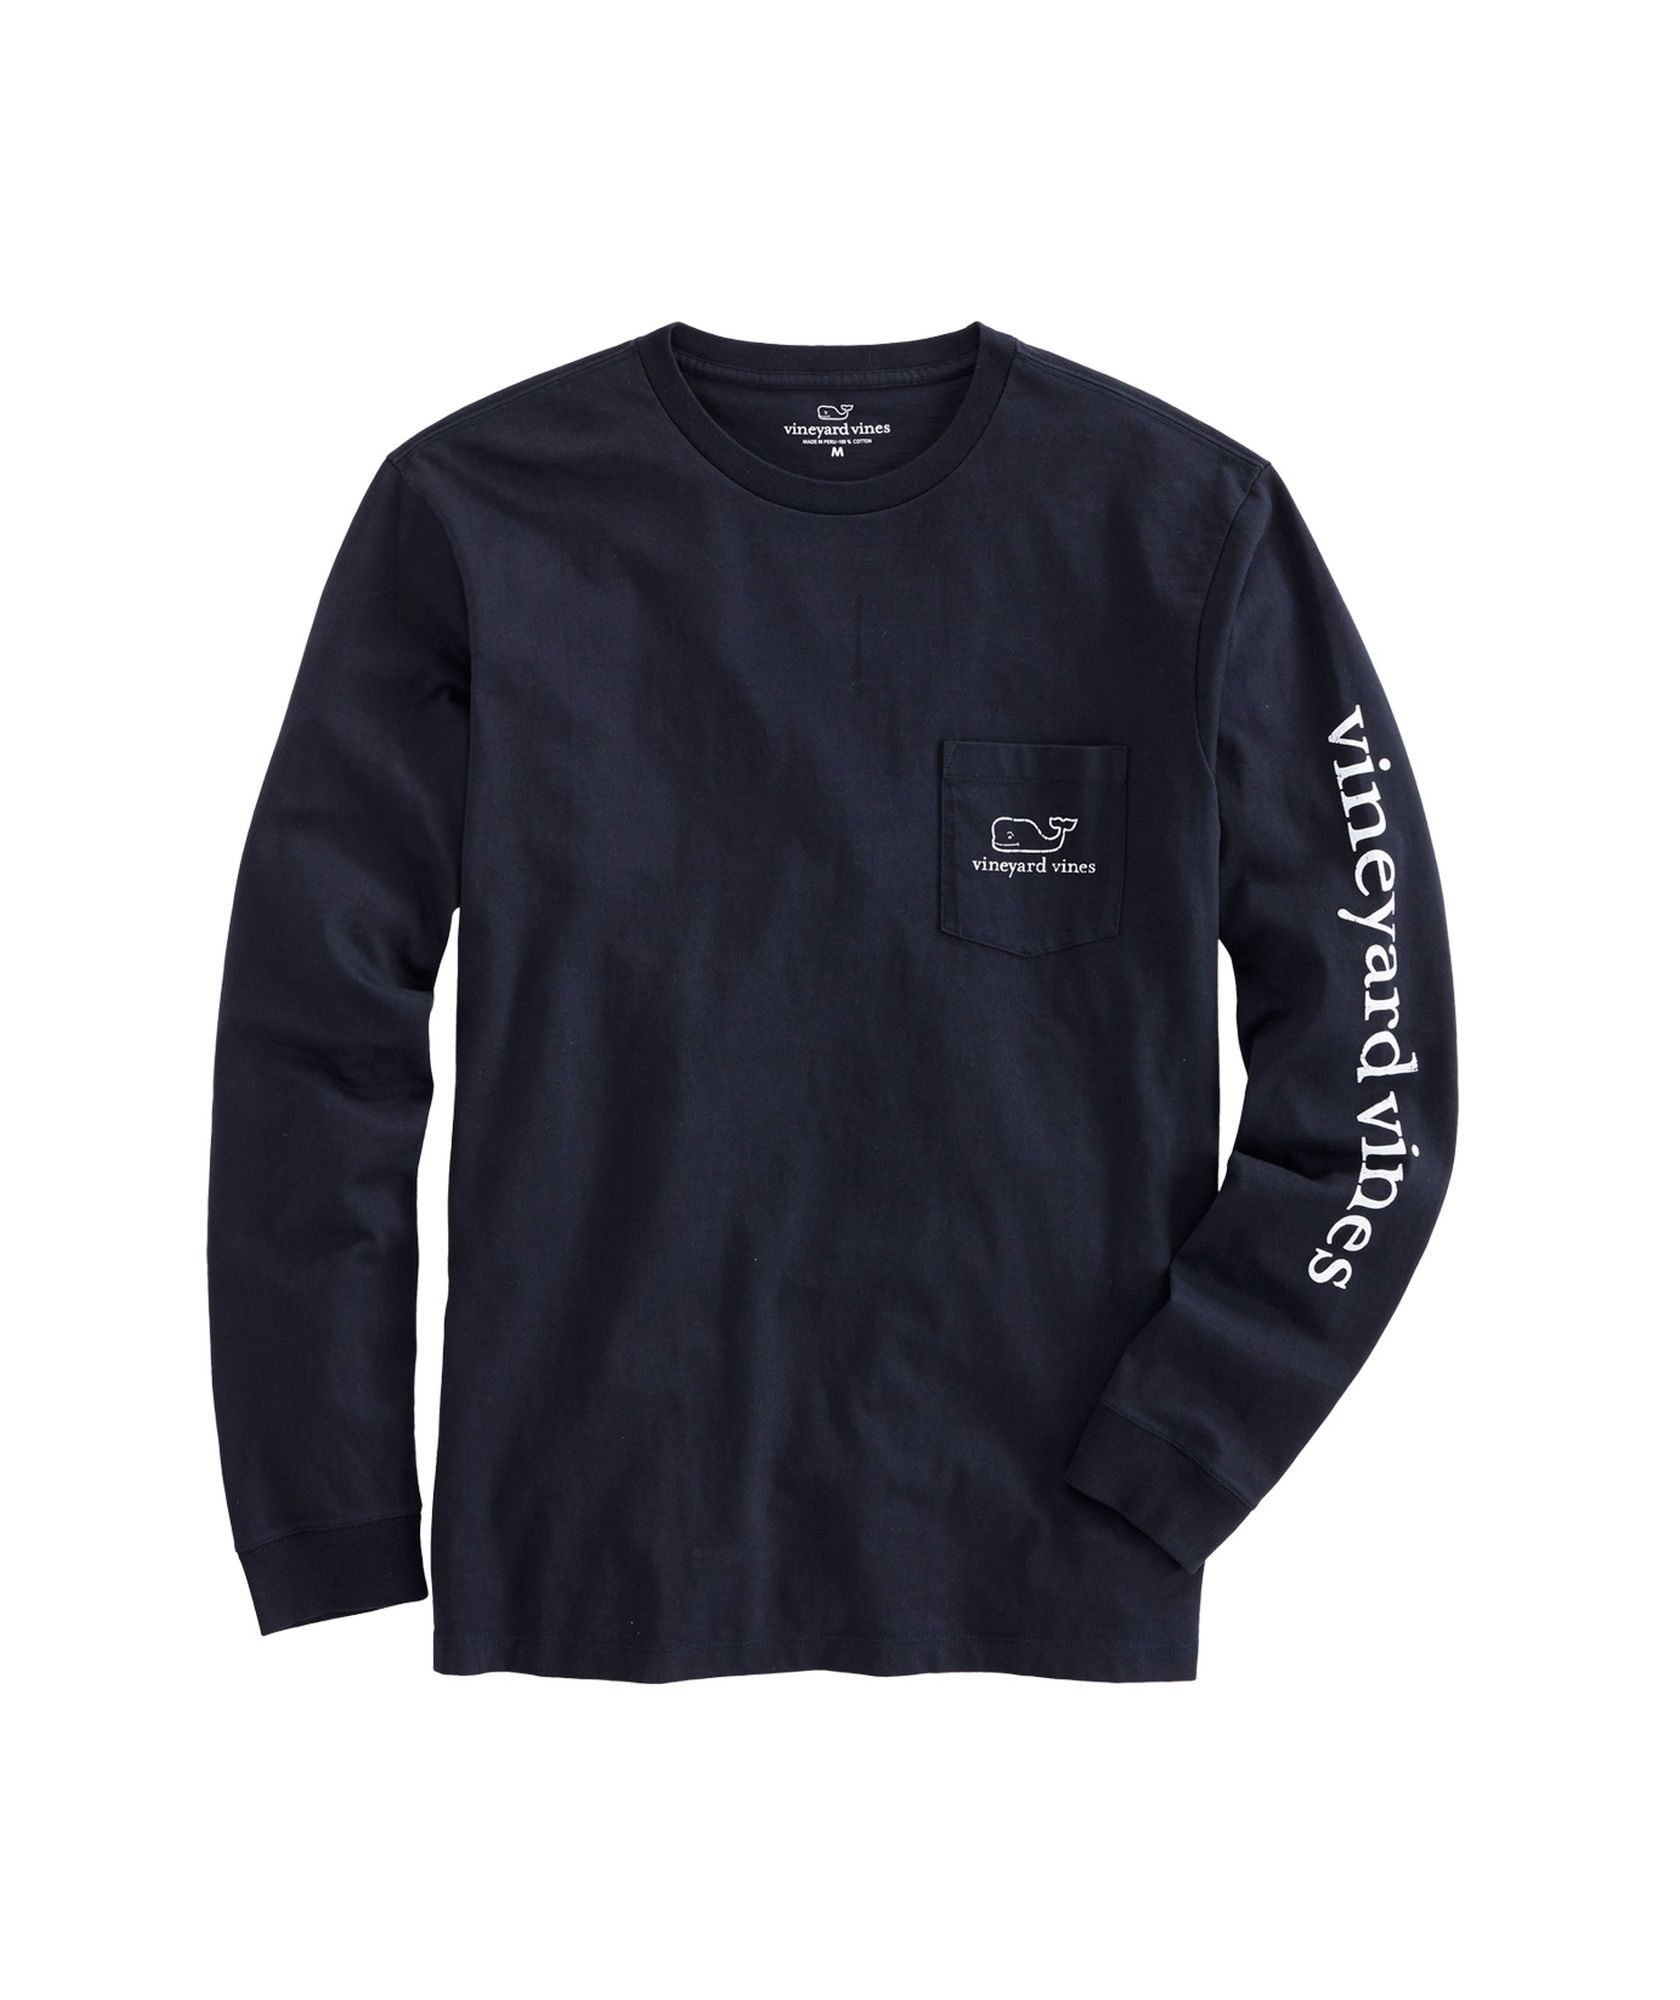 b4eb9ab012ce Long-Sleeve Vintage Whale Graphic Pocket T-Shirt | Want | Long ...